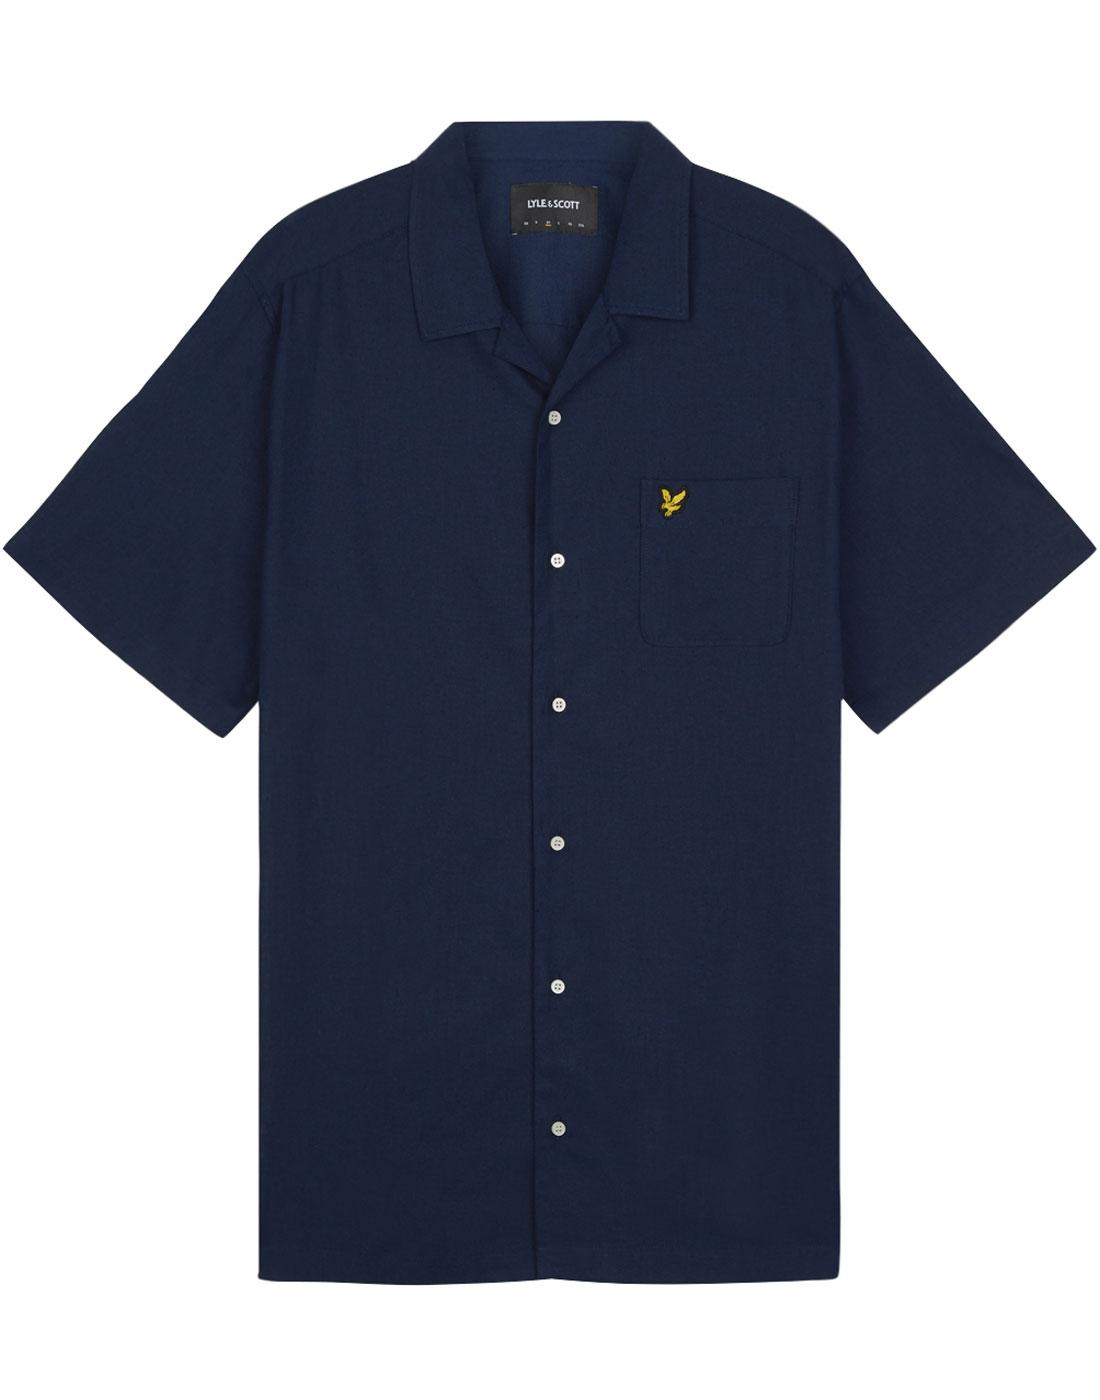 LYLE & SCOTT Retro 70s Resort Collar Linen Shirt N